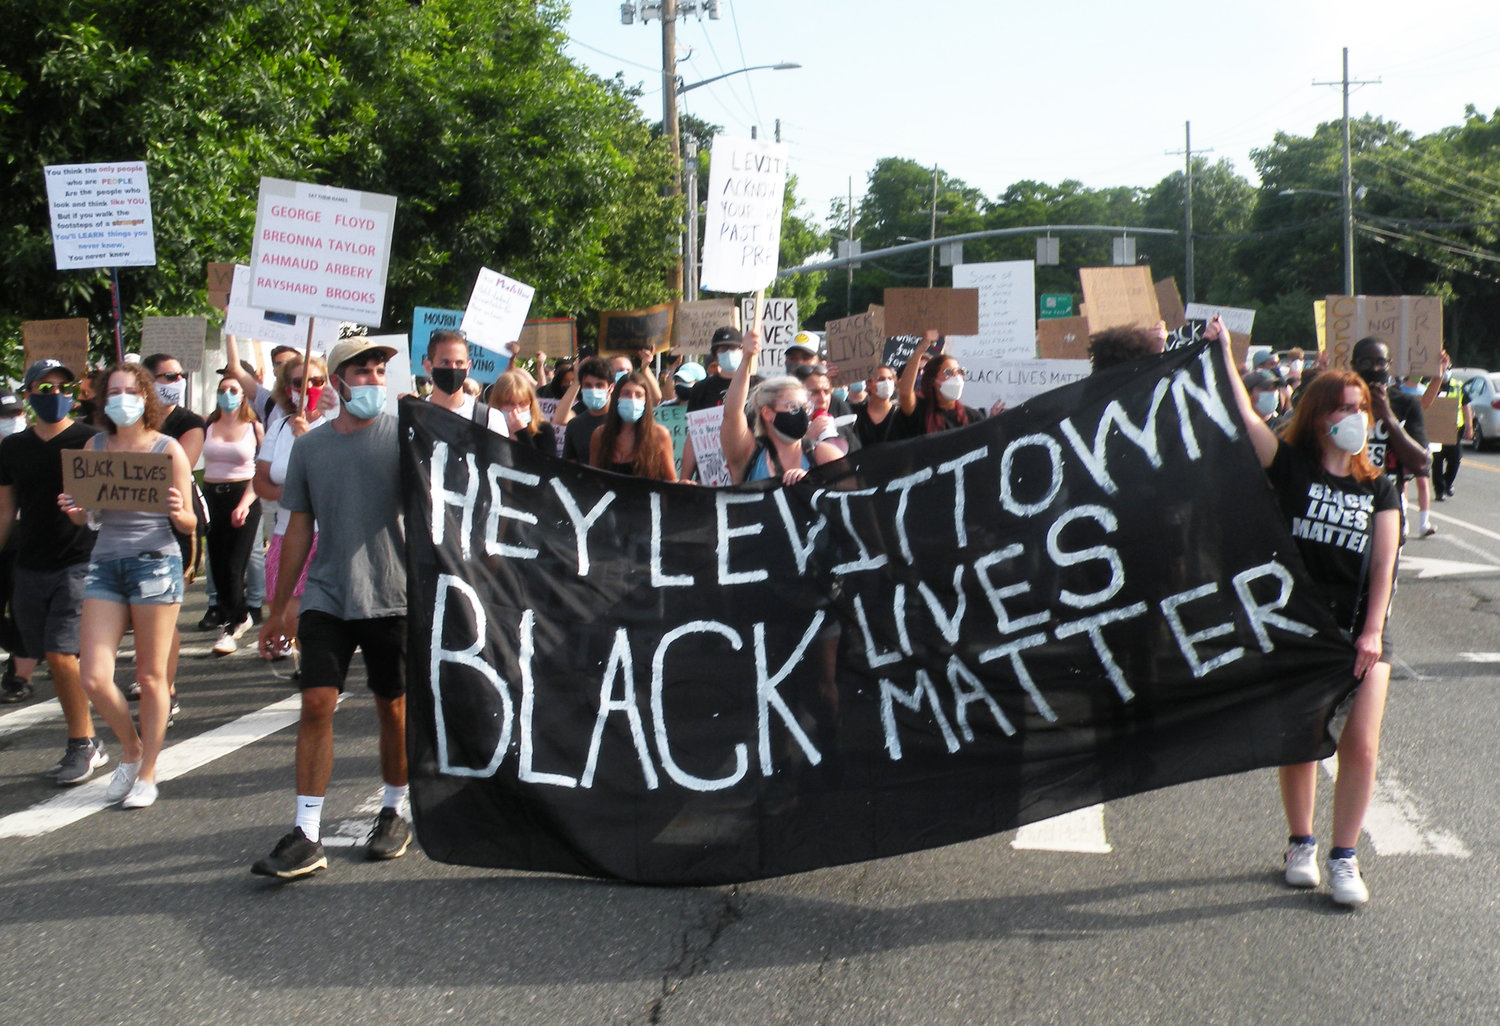 Protesters marched through Wantagh and Levittown last Saturday in support of Black Lives Matter.